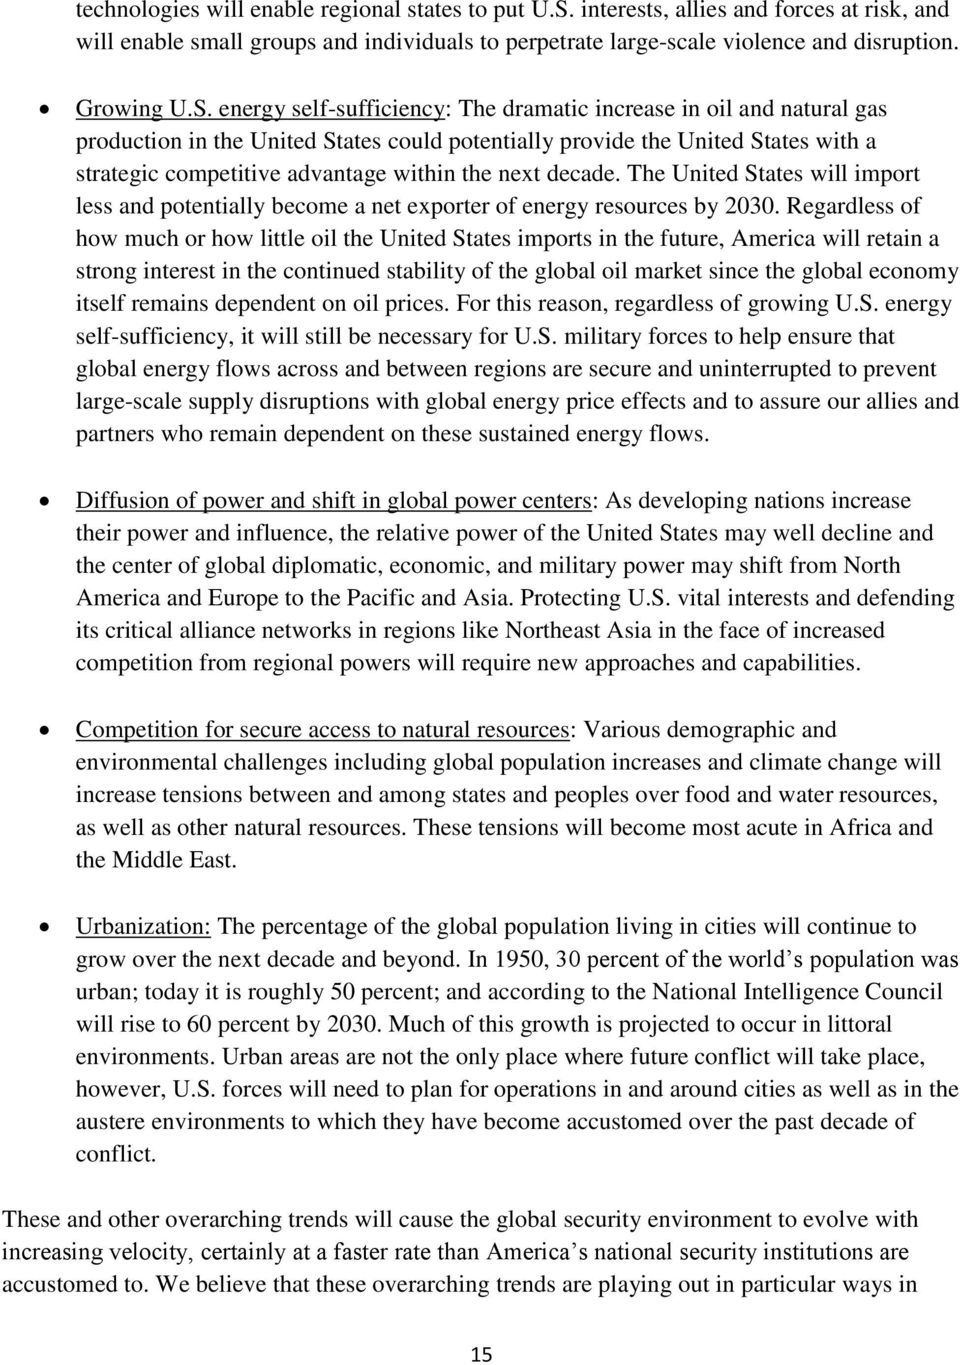 energy self-sufficiency: The dramatic increase in oil and natural gas production in the United States could potentially provide the United States with a strategic competitive advantage within the